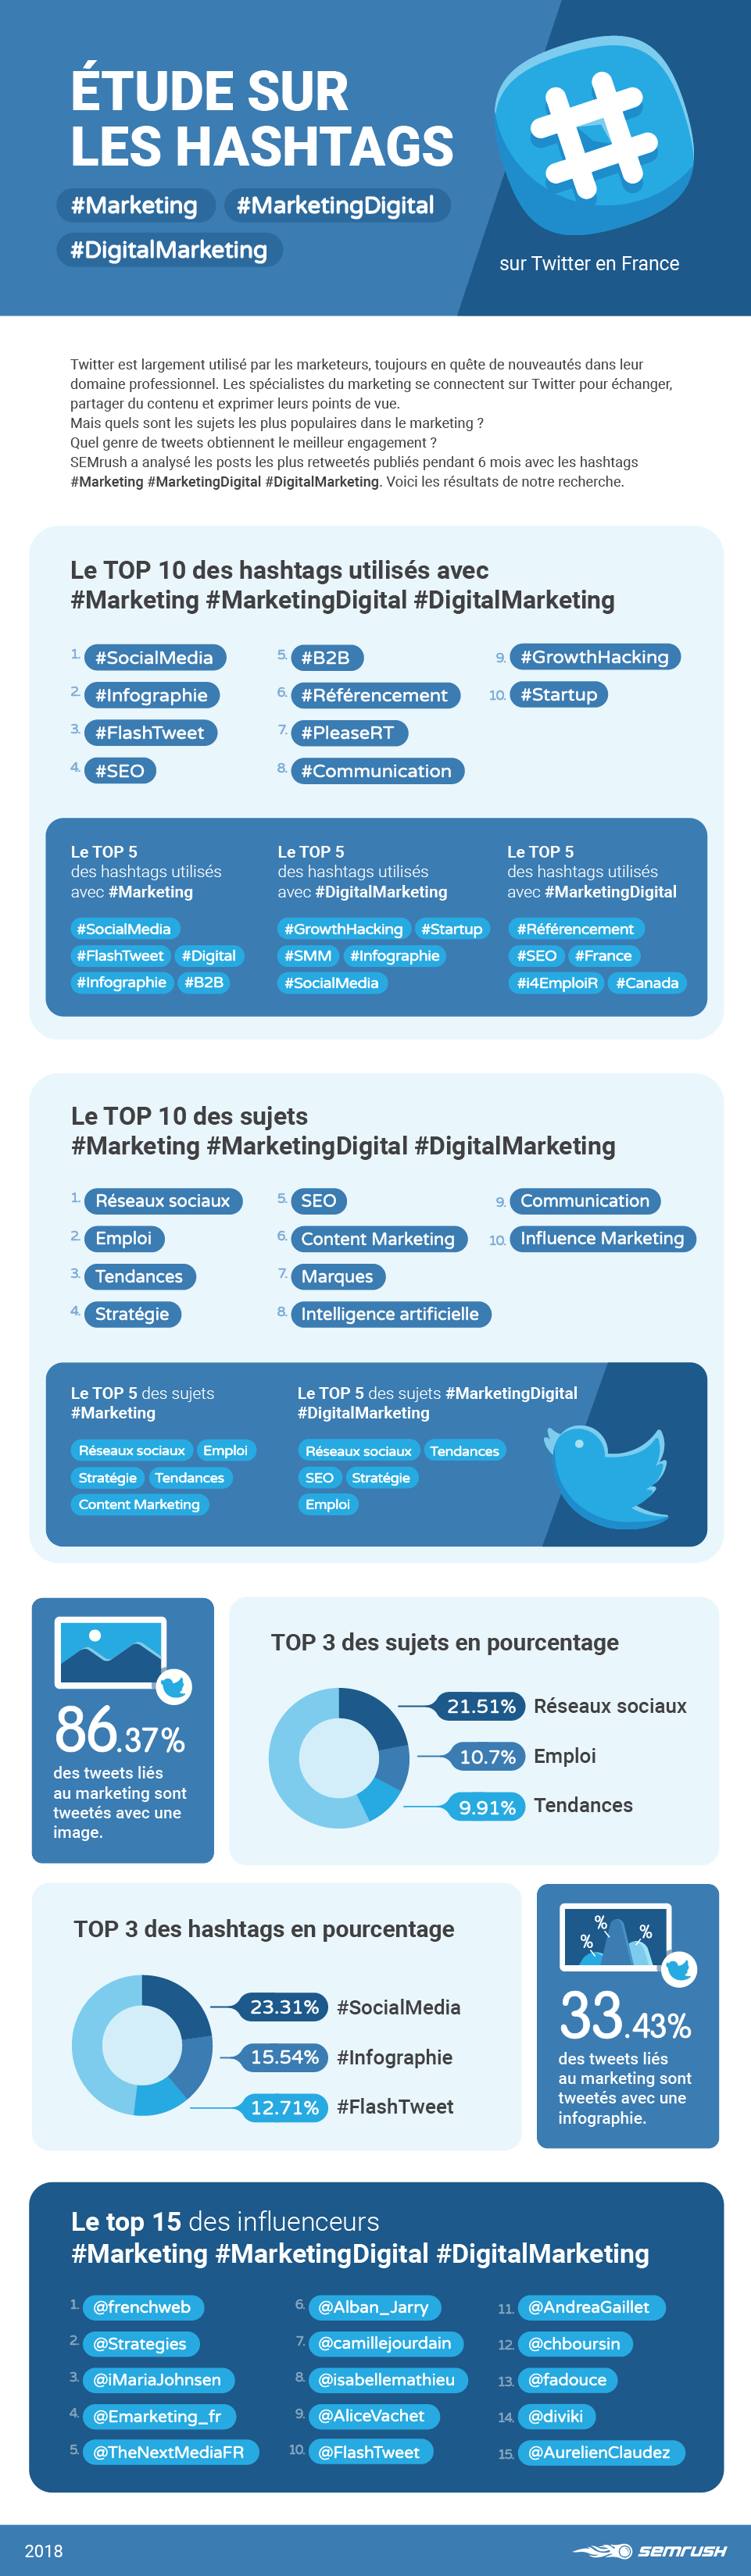 Infographie Tendances du marketing sur Twitter